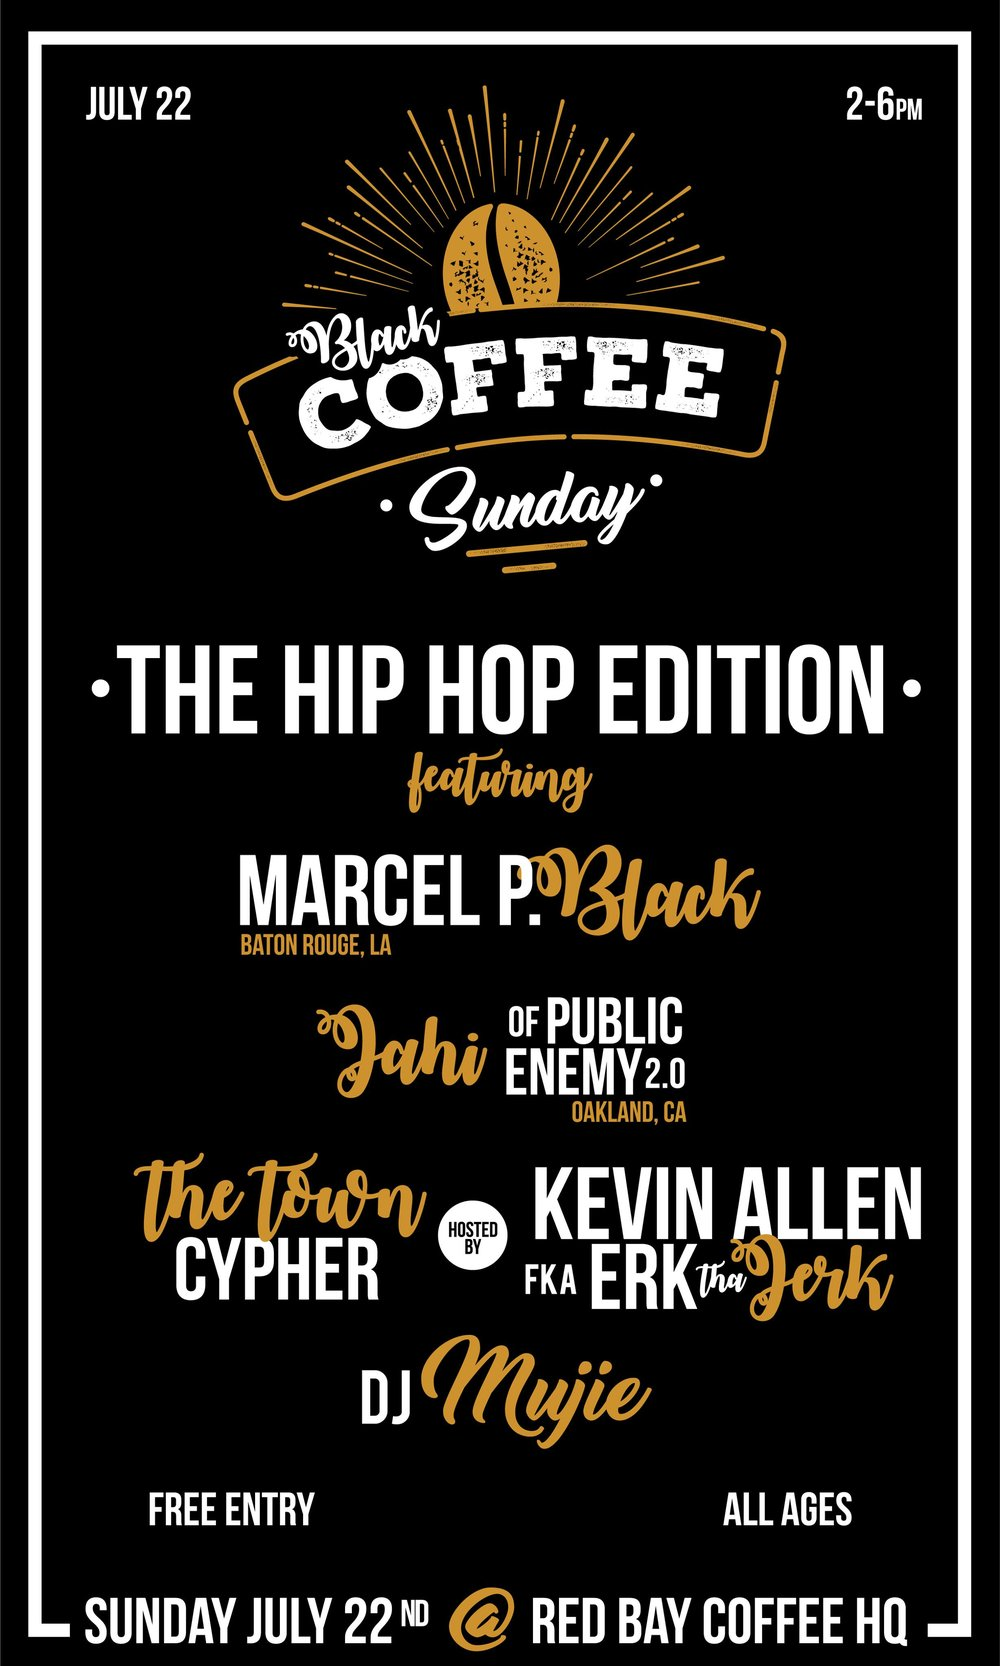 Black Coffee Sunday 7/22 - Them People Productions is excited to host yet another in our roster of events and cultural programming aimed at helping our community cultivate healing and hope with our favorite caffeinated day party - Black Coffee Sunday! This live music event offers a safe space for fun, as well as an environment for reflection and networking. It's meant to be a momentary, but necessary, reprieve from the struggle. It's to refuel and recharge you. Help you meet like-minded Black folks. Mentally prepare you for a week where you might be one of the few, if not the only, who understands how hard it is to #staywoke. It's also a damn good excuse to GET LIT on a Sunday afternoon!